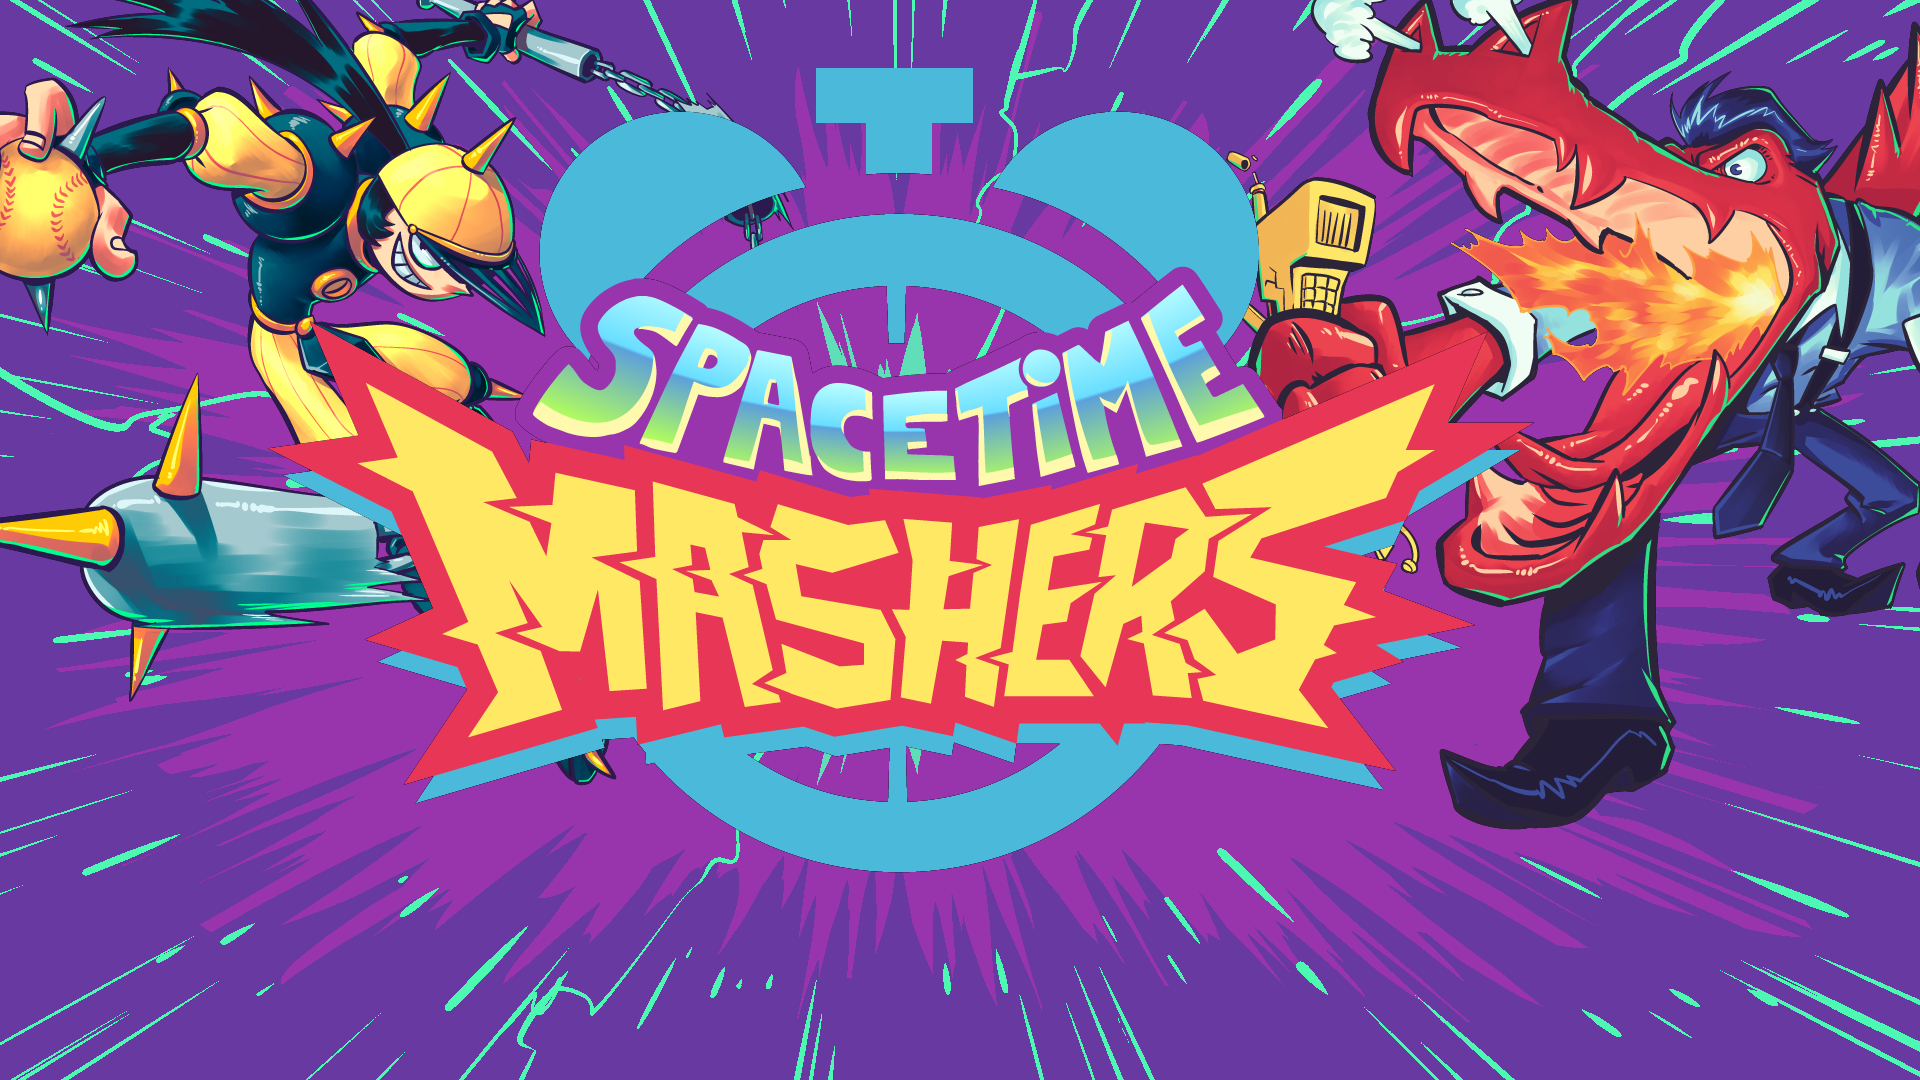 SpaceTime Mashers